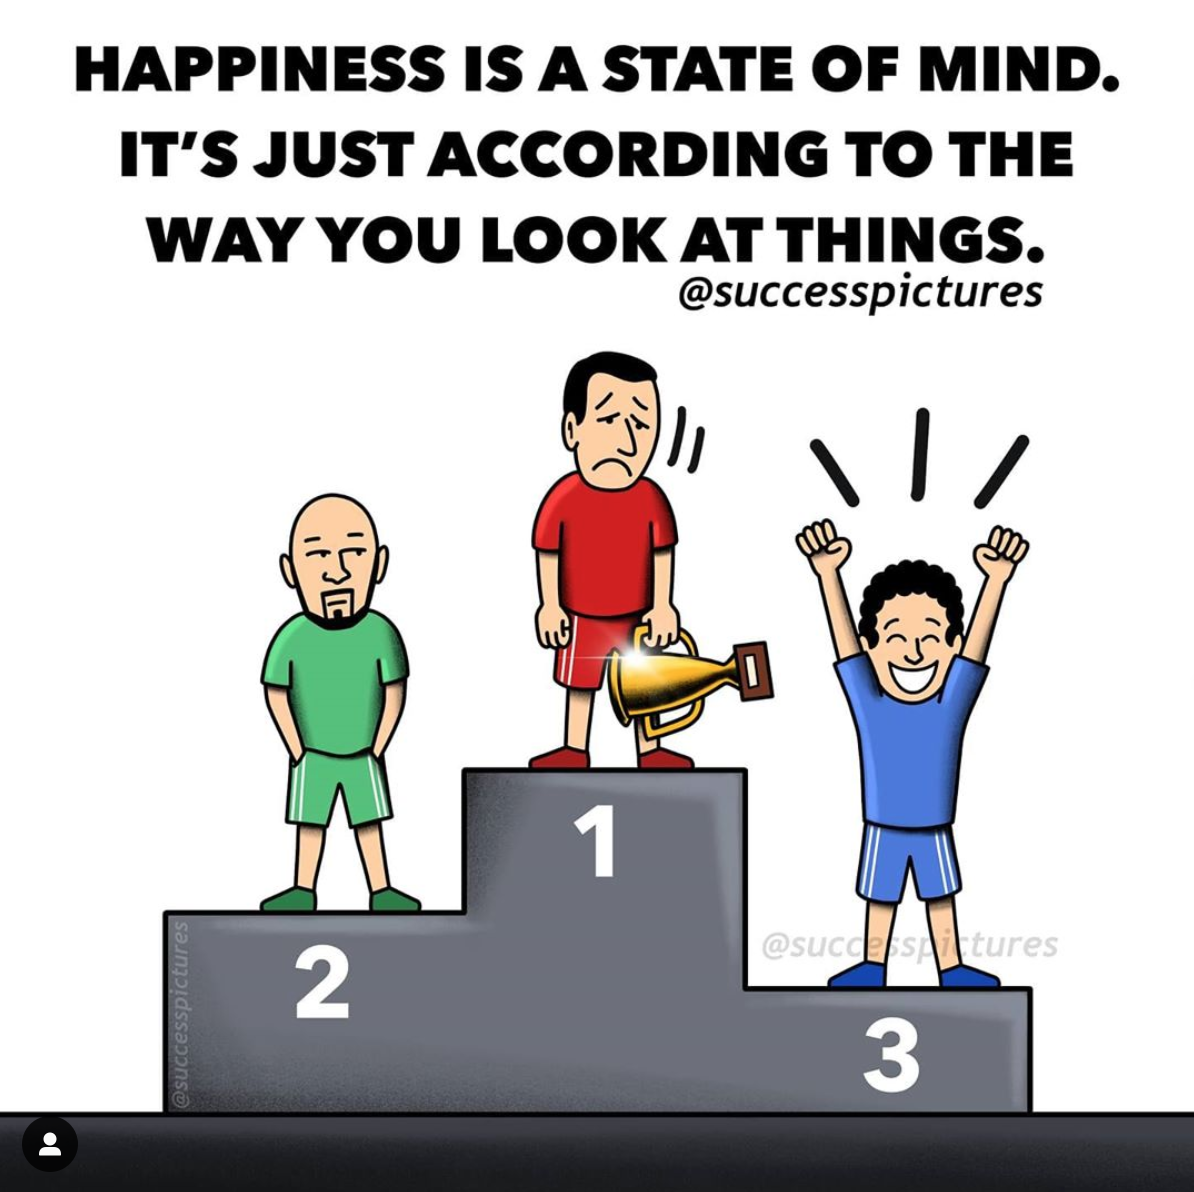 HAPPINESS IS A STATE OF MIND. IT'S JUST ACCORDING TO THE WAY YOU LOOK AT THINGS. @successpictures https://inspirational.ly